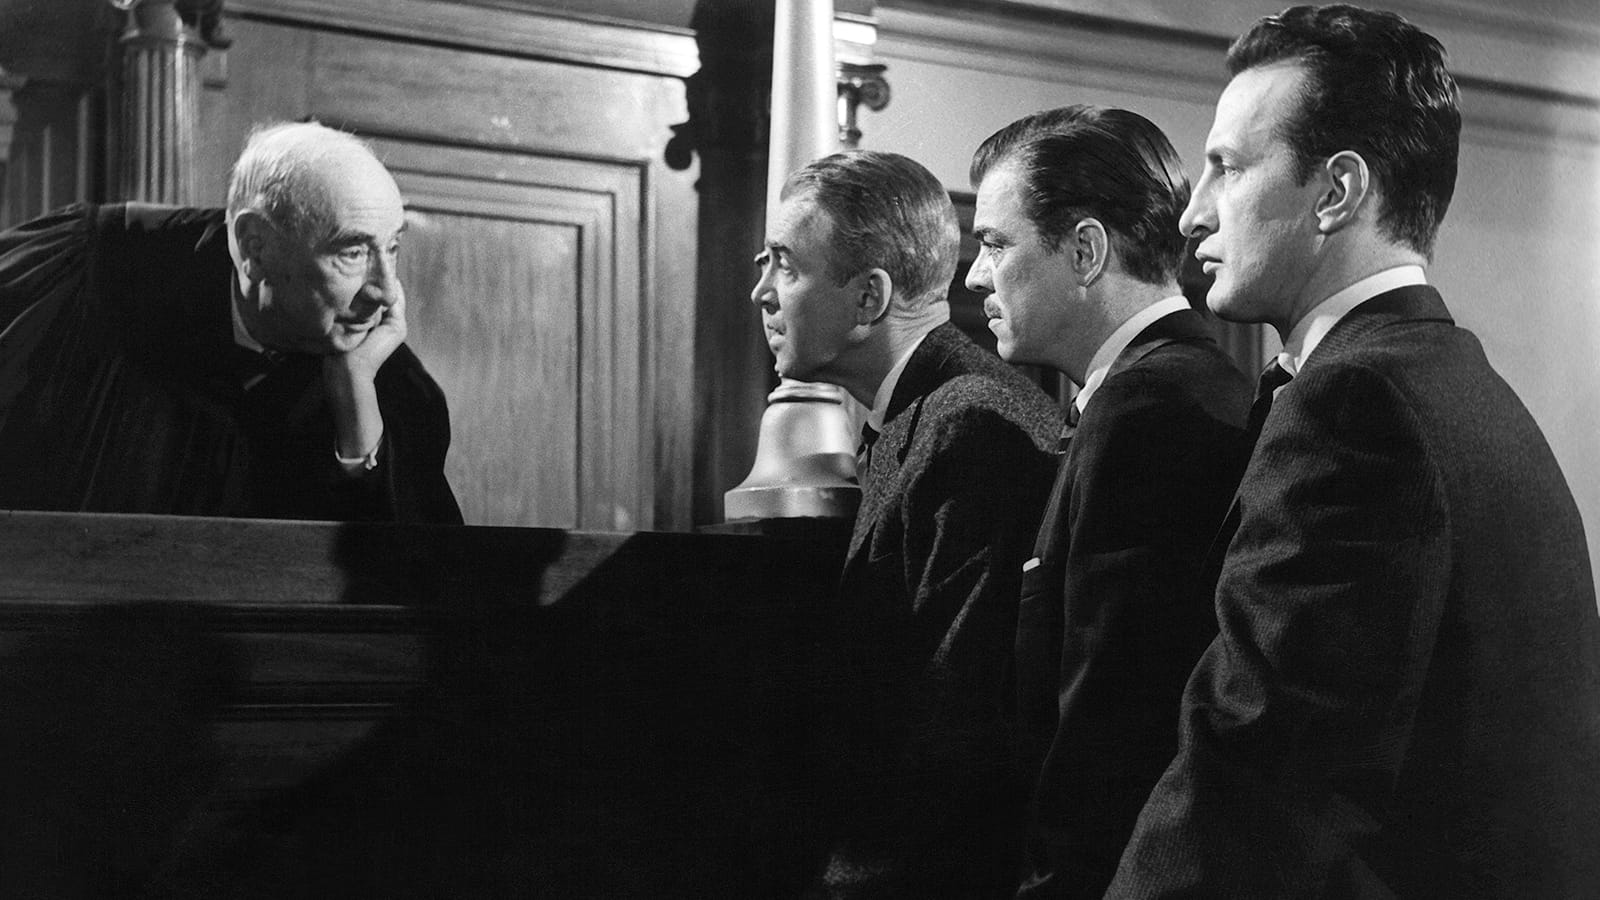 The Criterion Collection - Anatomy of a Murder(1959)